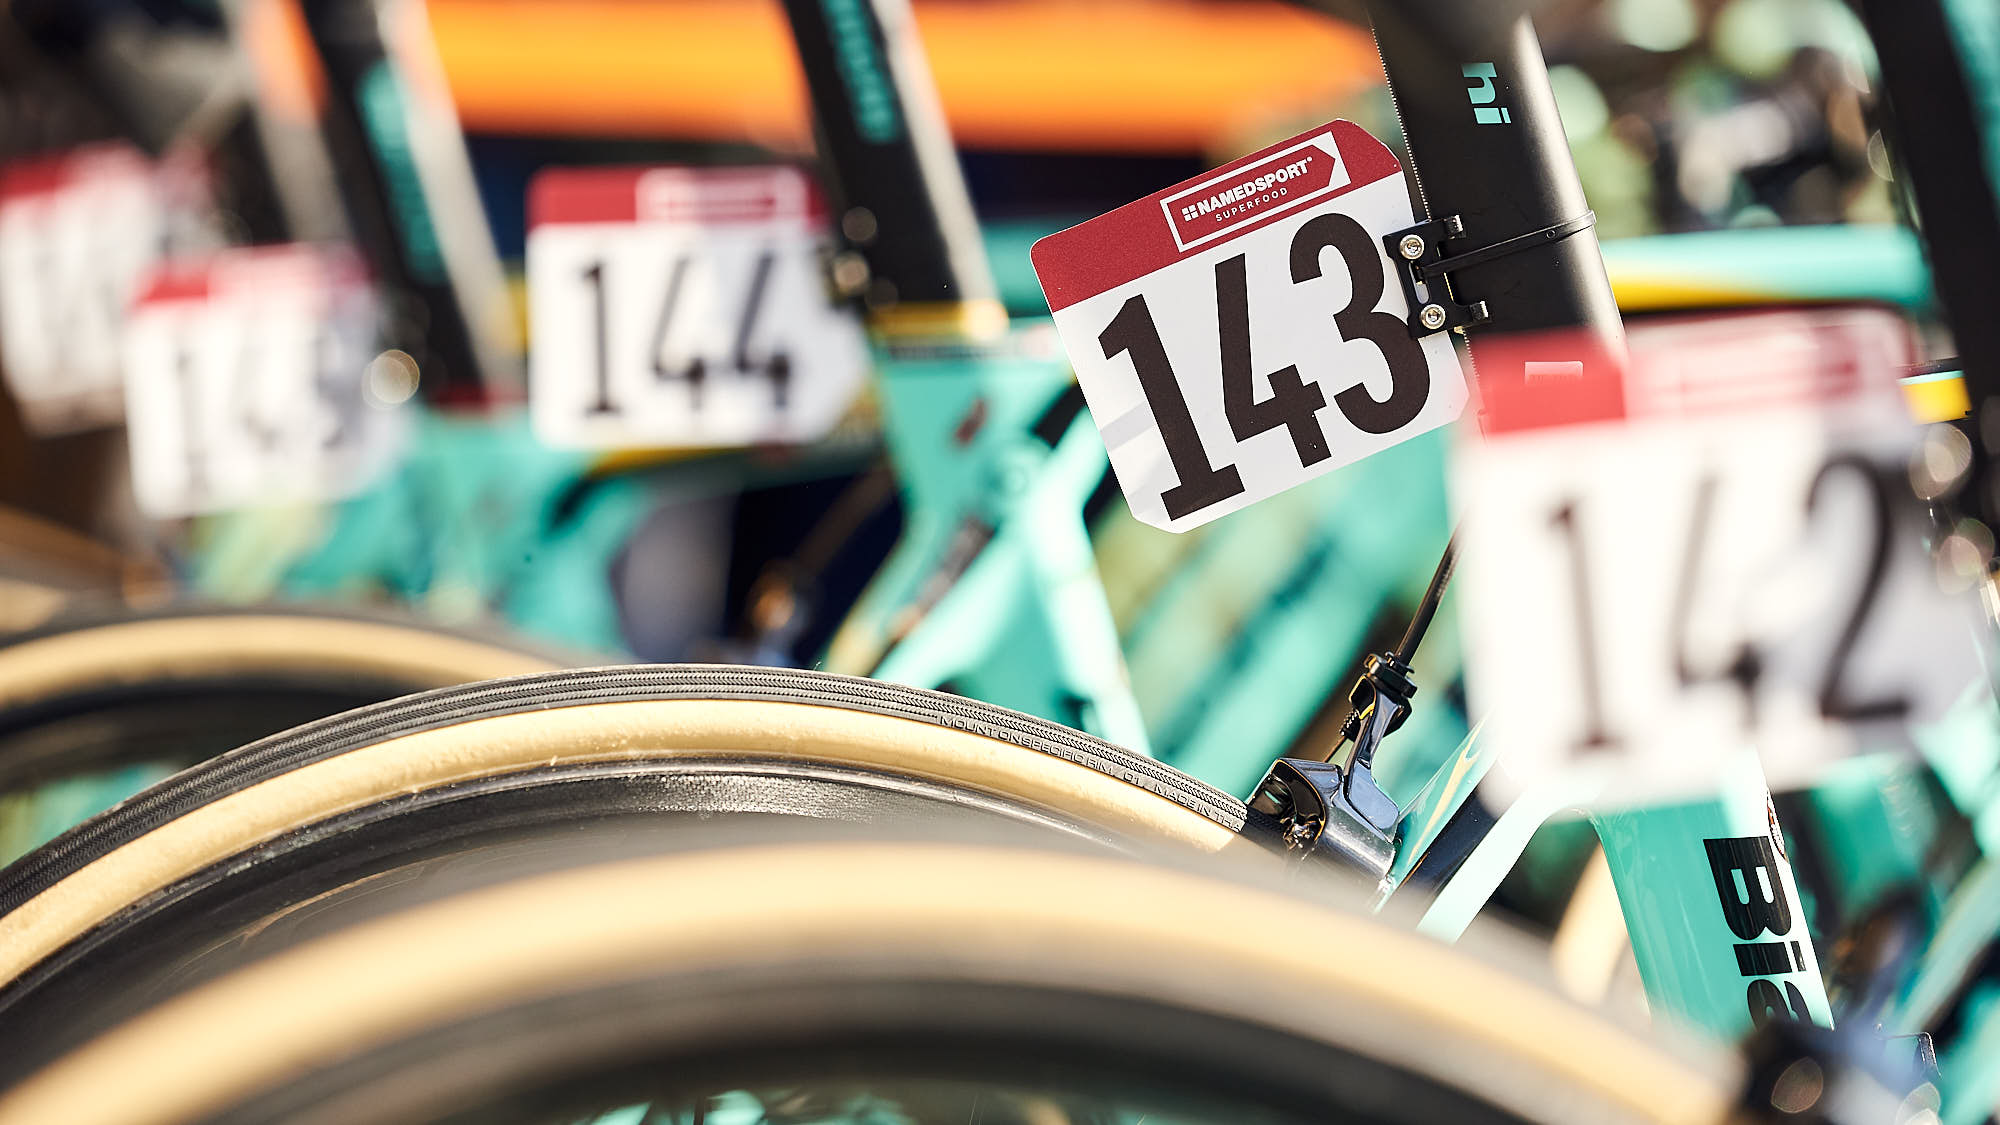 Tags on Jumbo-Visma's Bianchi bikes for Strade Bianche